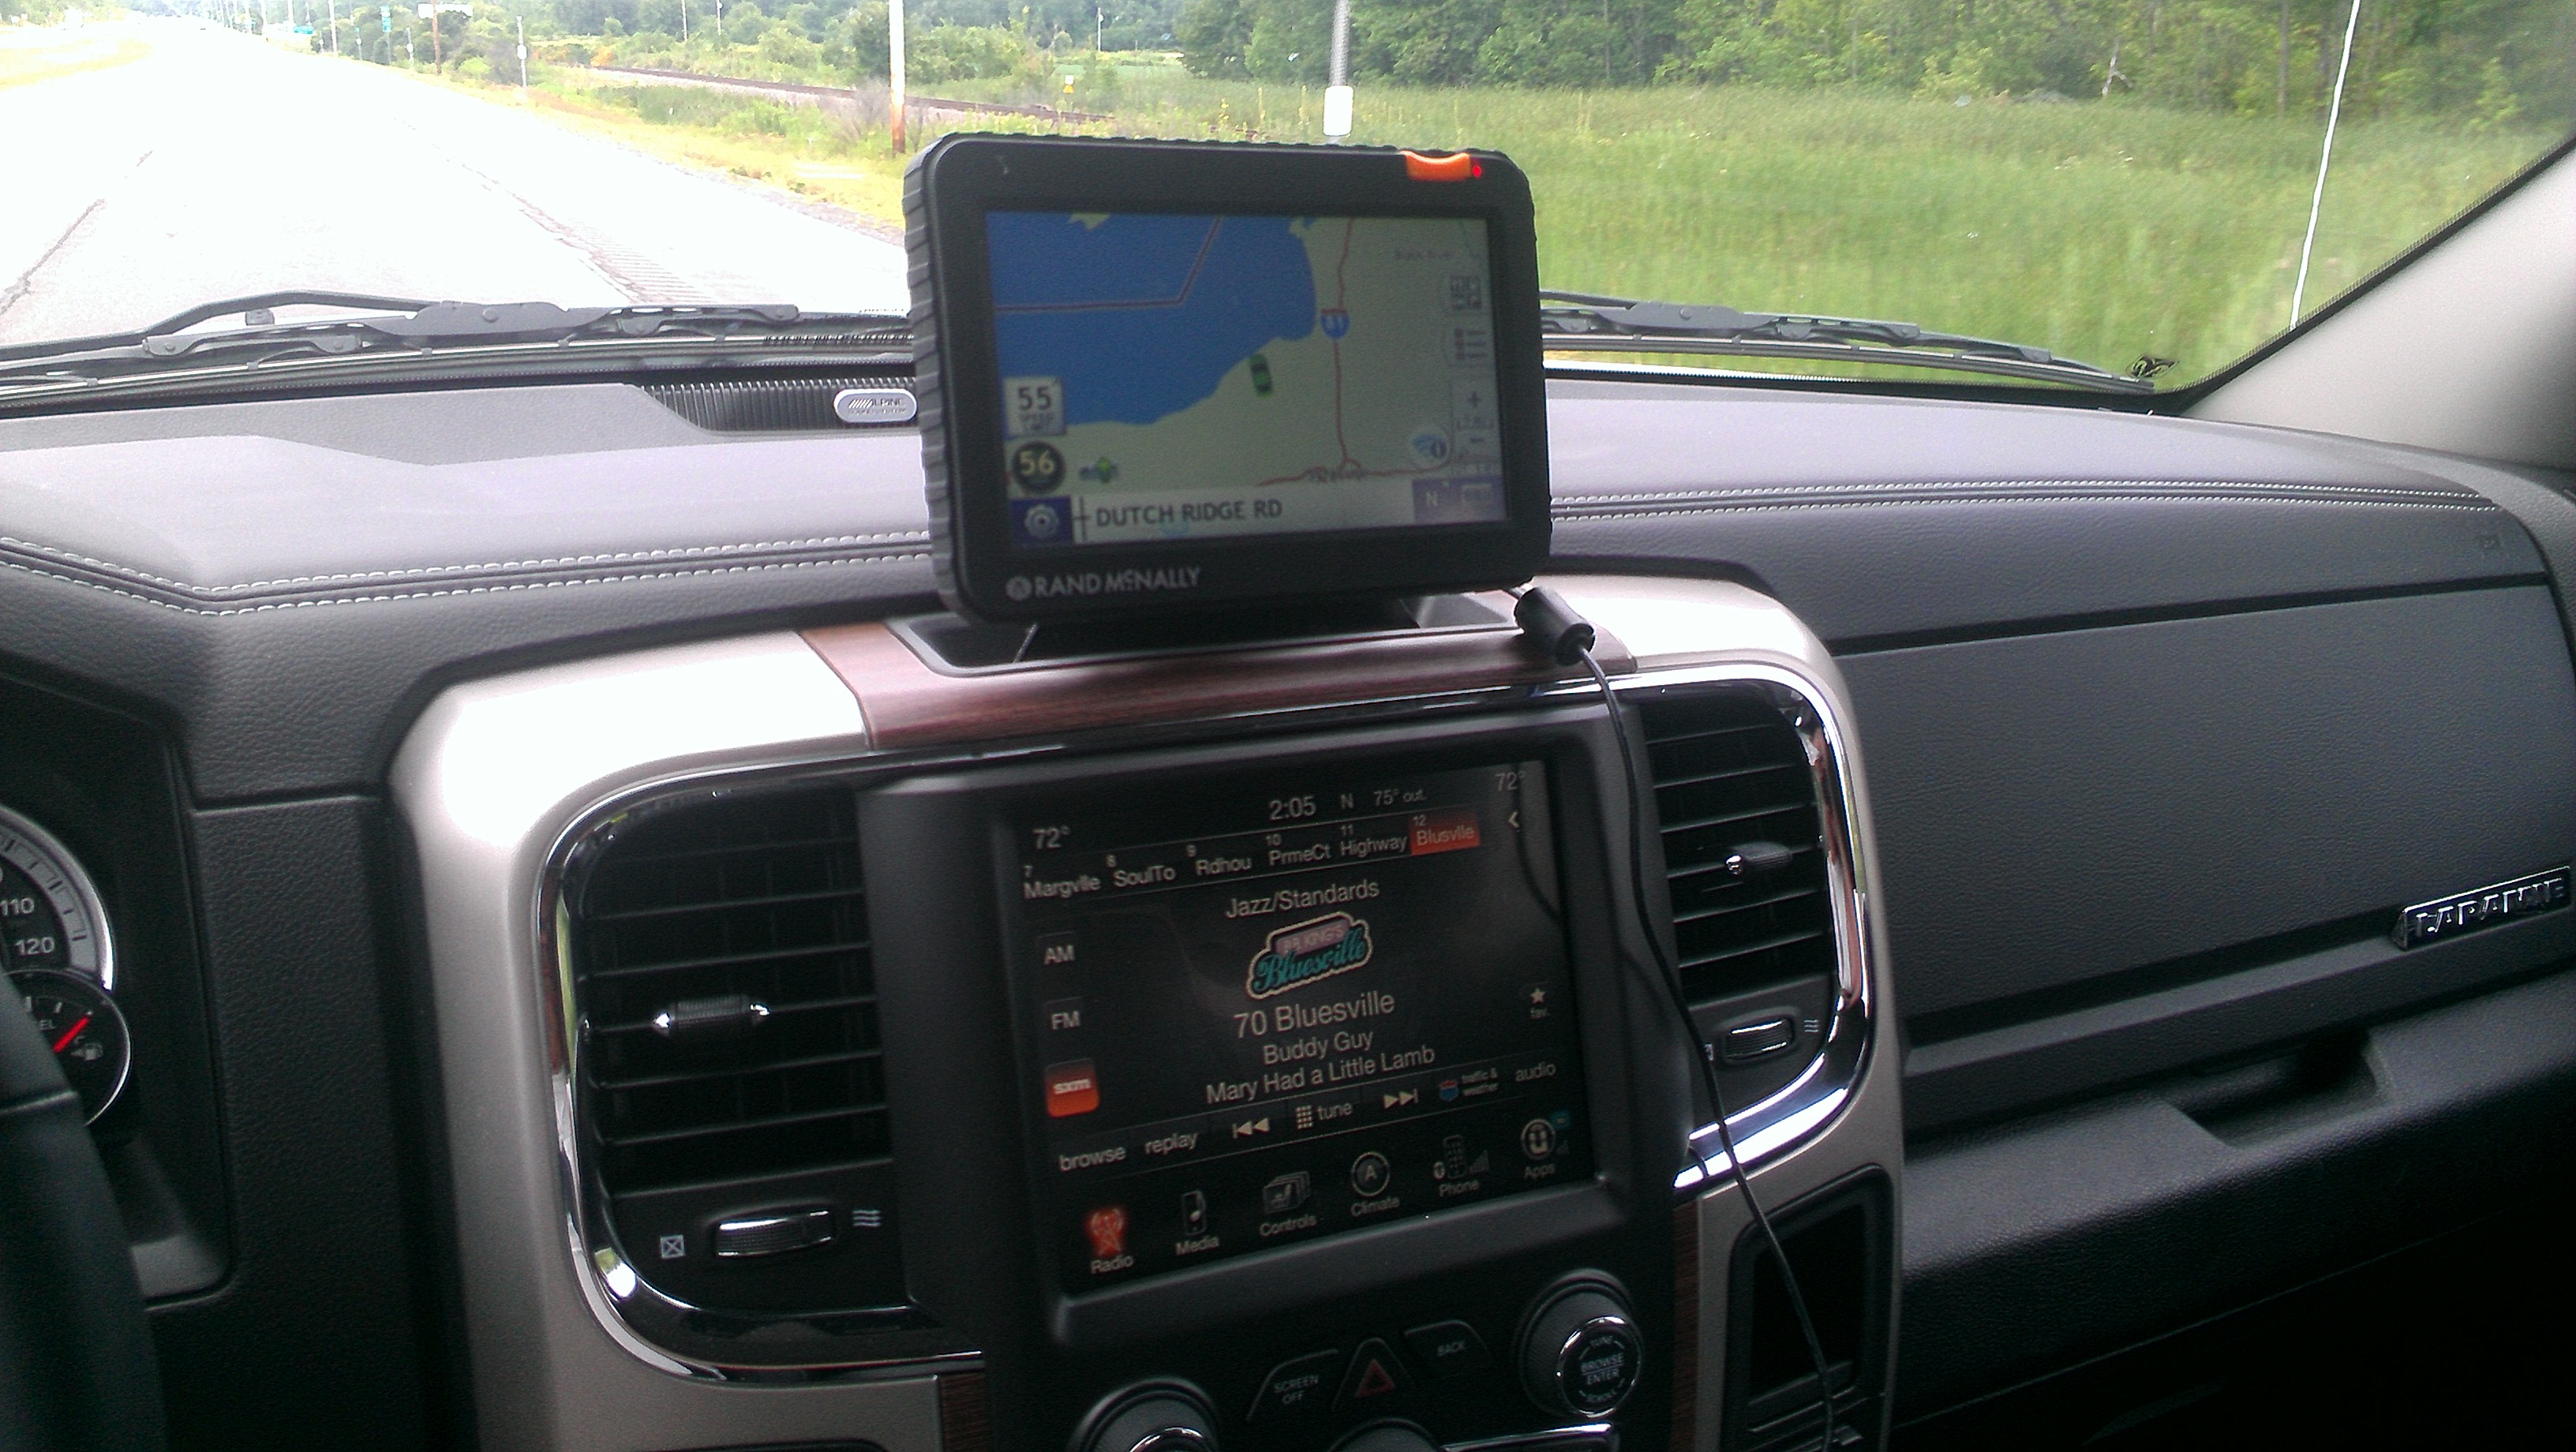 D Looking Buying Have Lot Question I Want Put Rest Gps Mounted Dash on 2015 Dodge Ram 1500 Dash